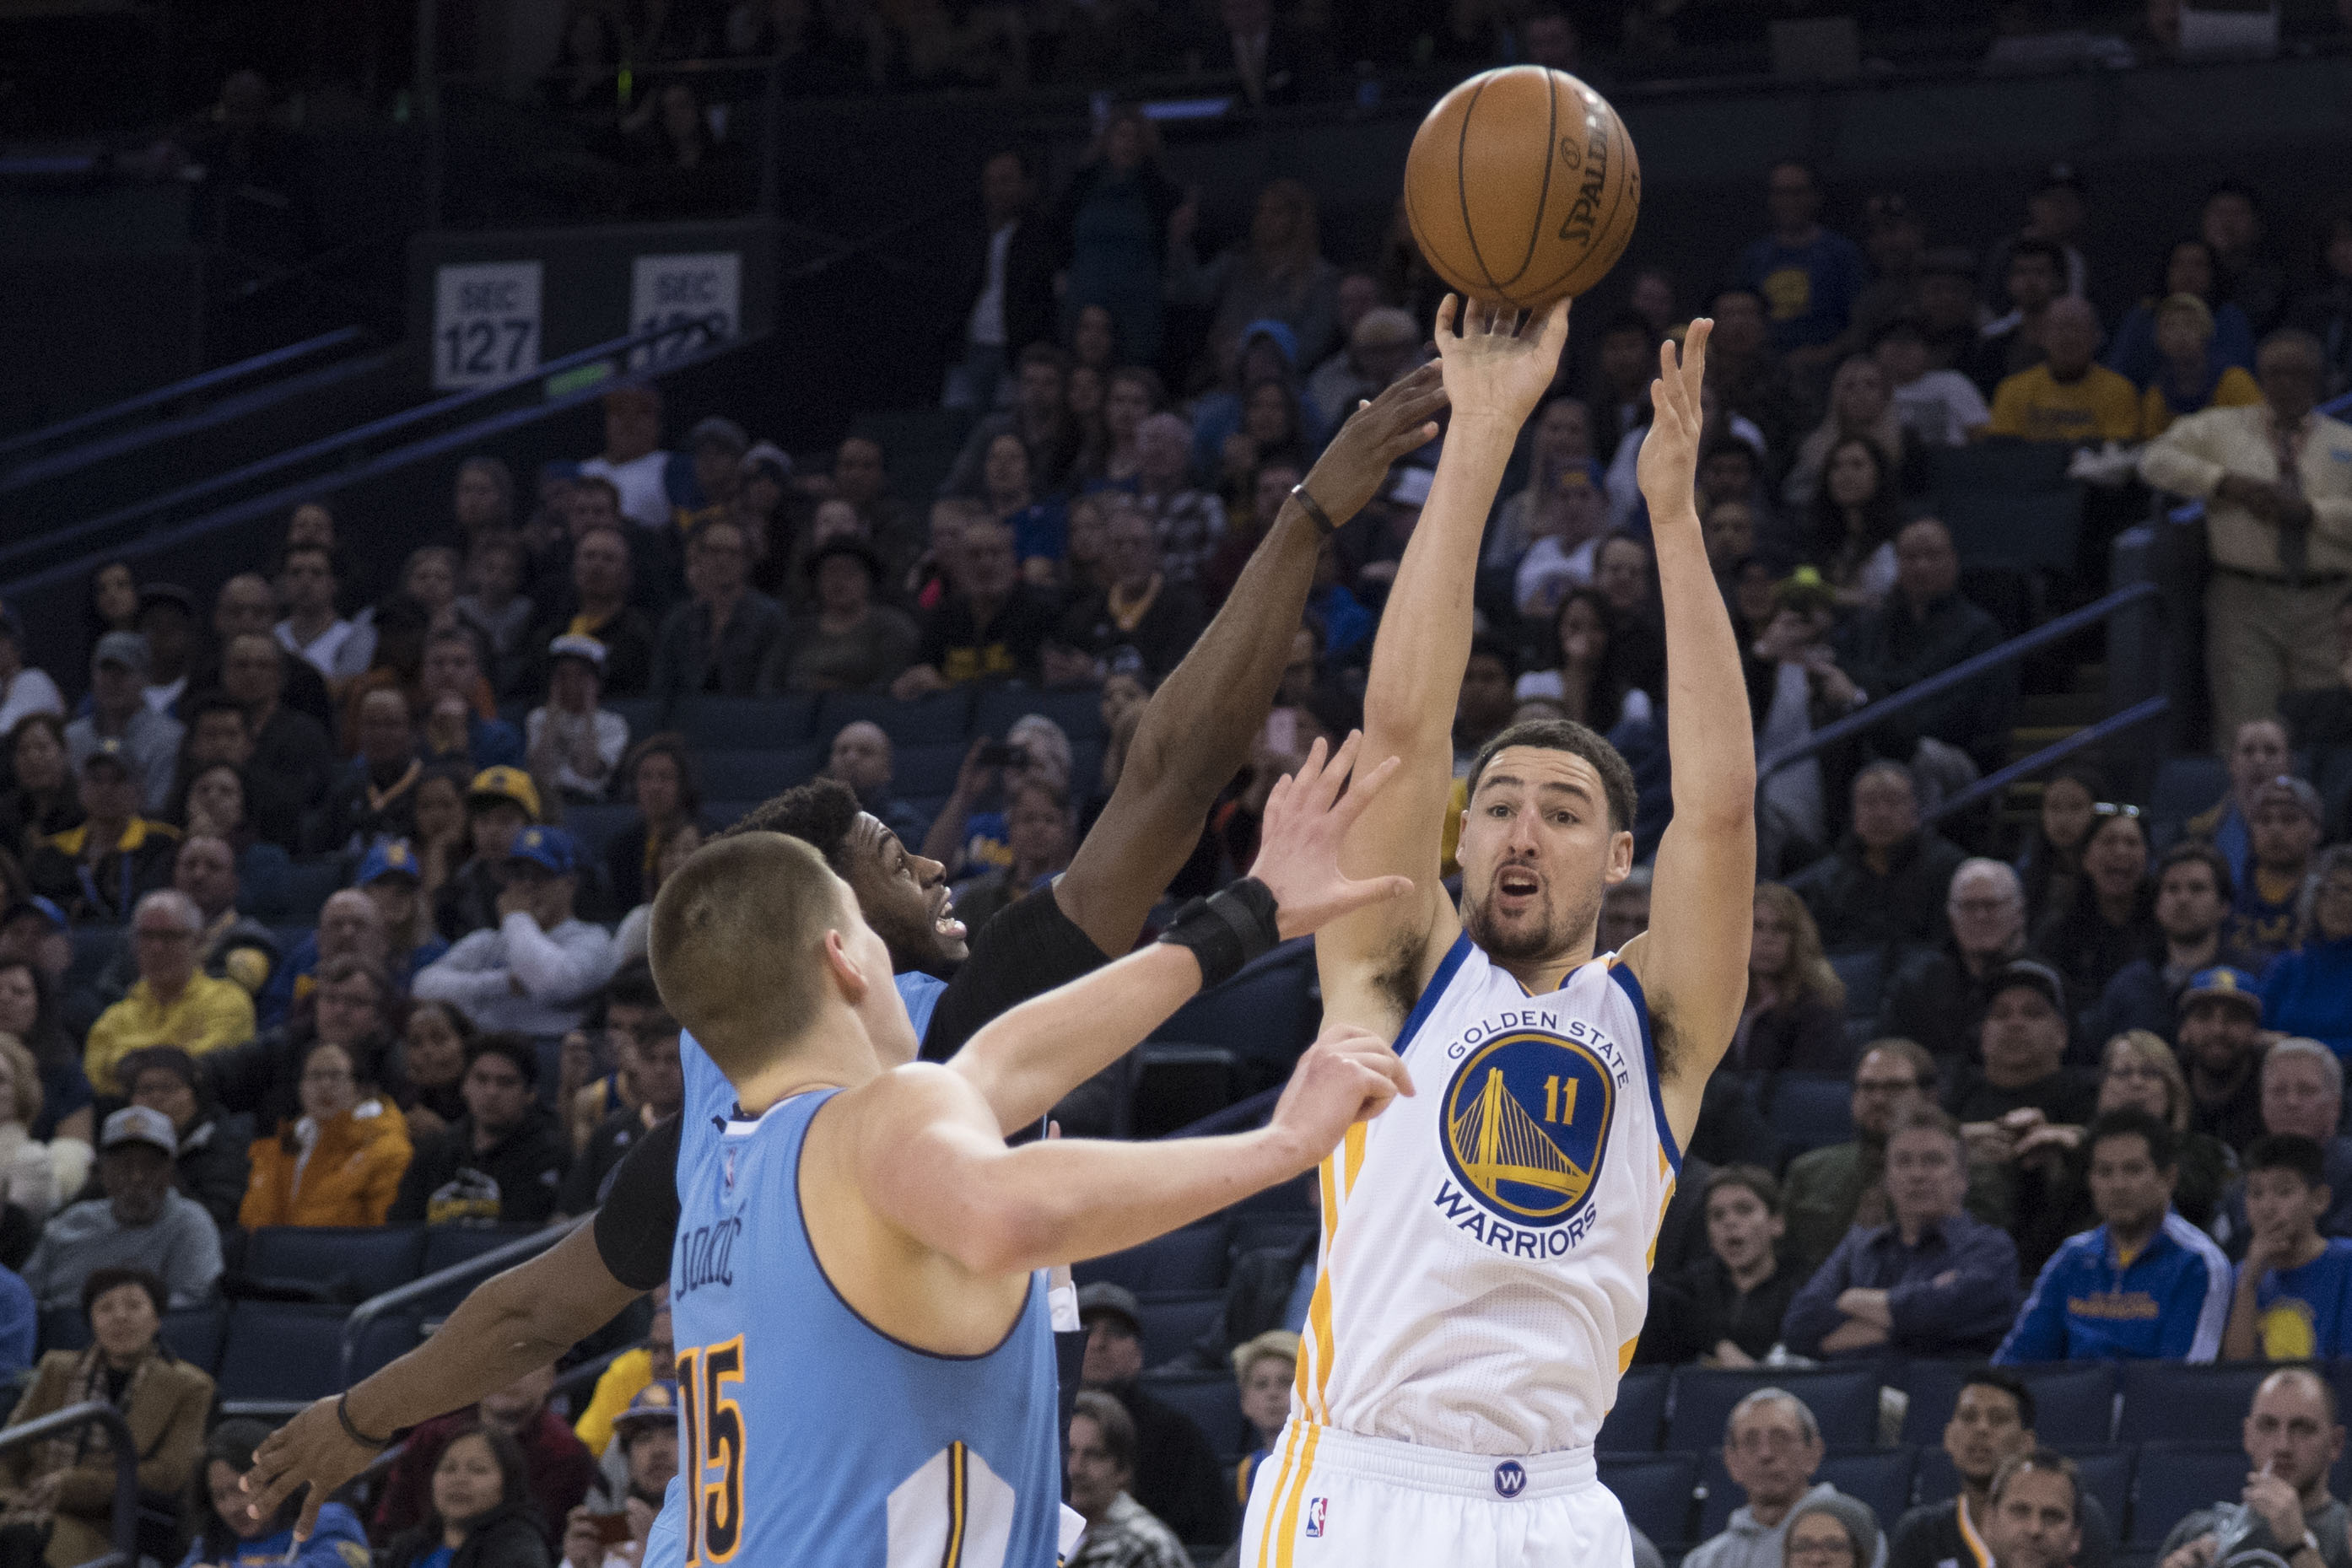 January 2, 2017; Oakland, CA, USA; Golden State Warriors guard Klay Thompson (11) shoots the basketball against Denver Nuggets forward Nikola Jokic (15) during the fourth quarter at Oracle Arena. The Warriors defeated the Nuggets 127-119. Mandatory Credit: Kyle Terada-USA TODAY Sports ORG XMIT: USATSI-324396 ORIG FILE ID:  20170102_kkt_st3_013.jpg